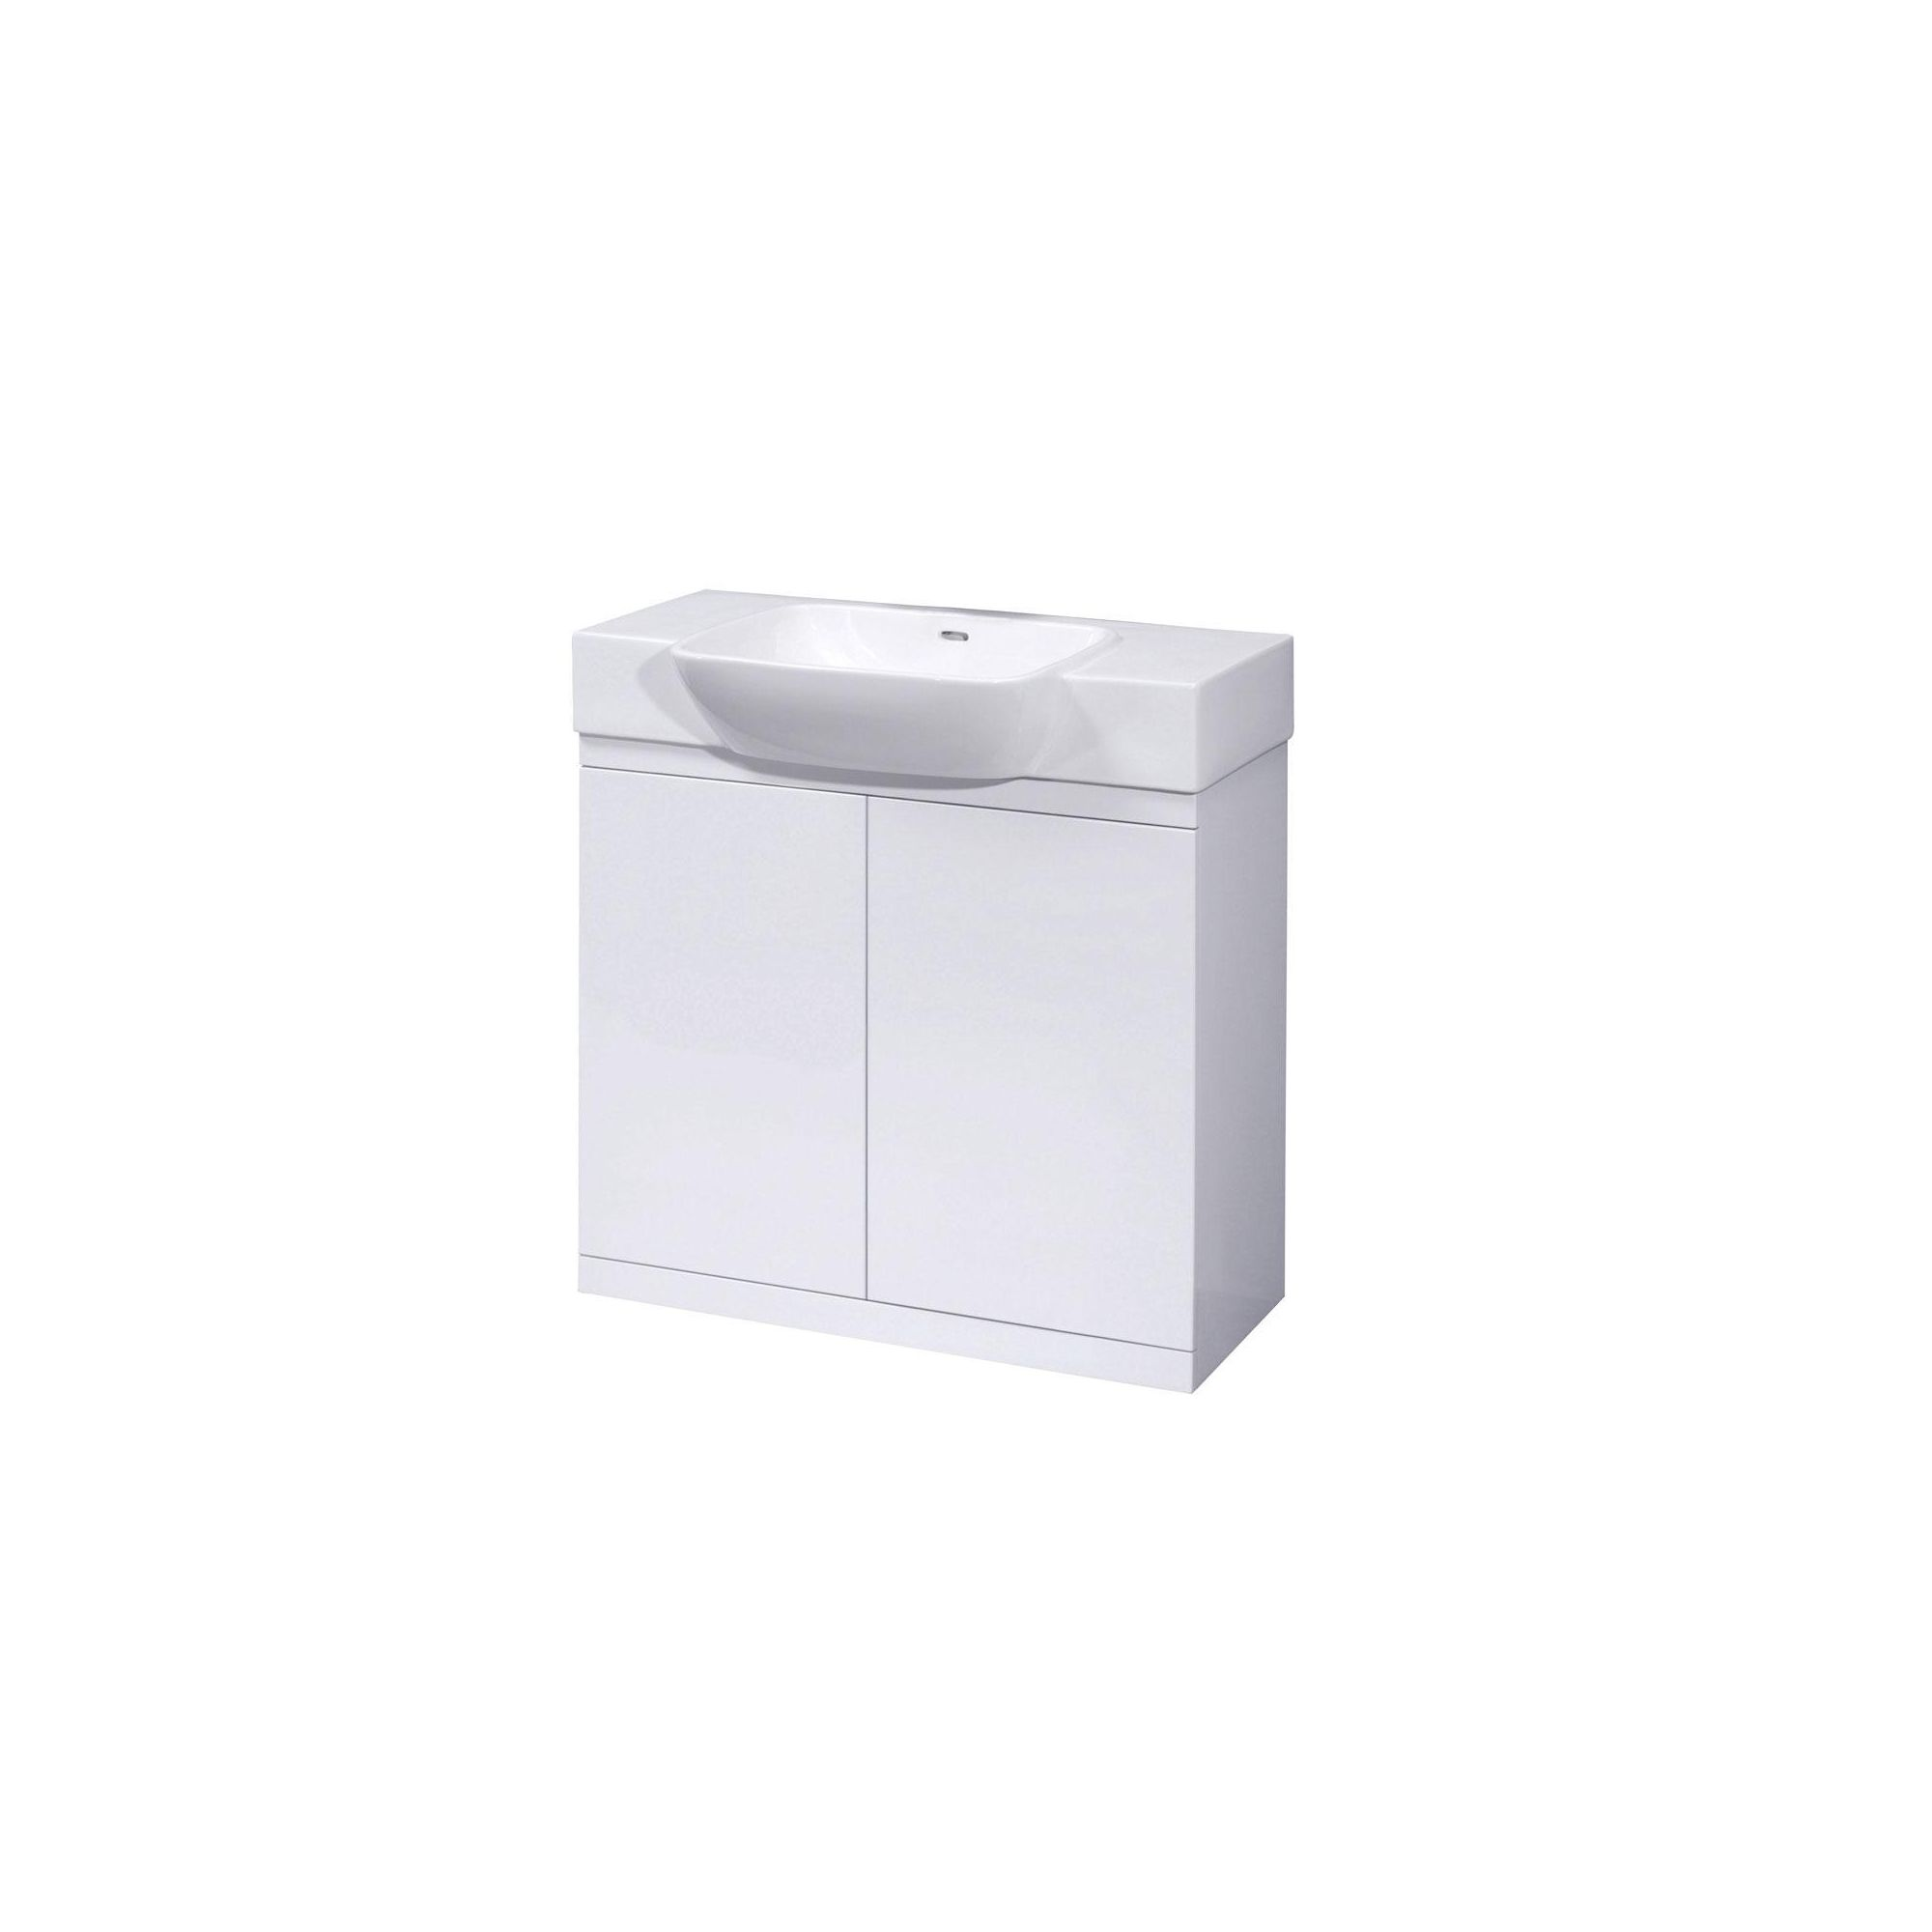 Ultra lux white floor mounted vanity unit and basin 695mm for Bathroom cabinets 800mm high